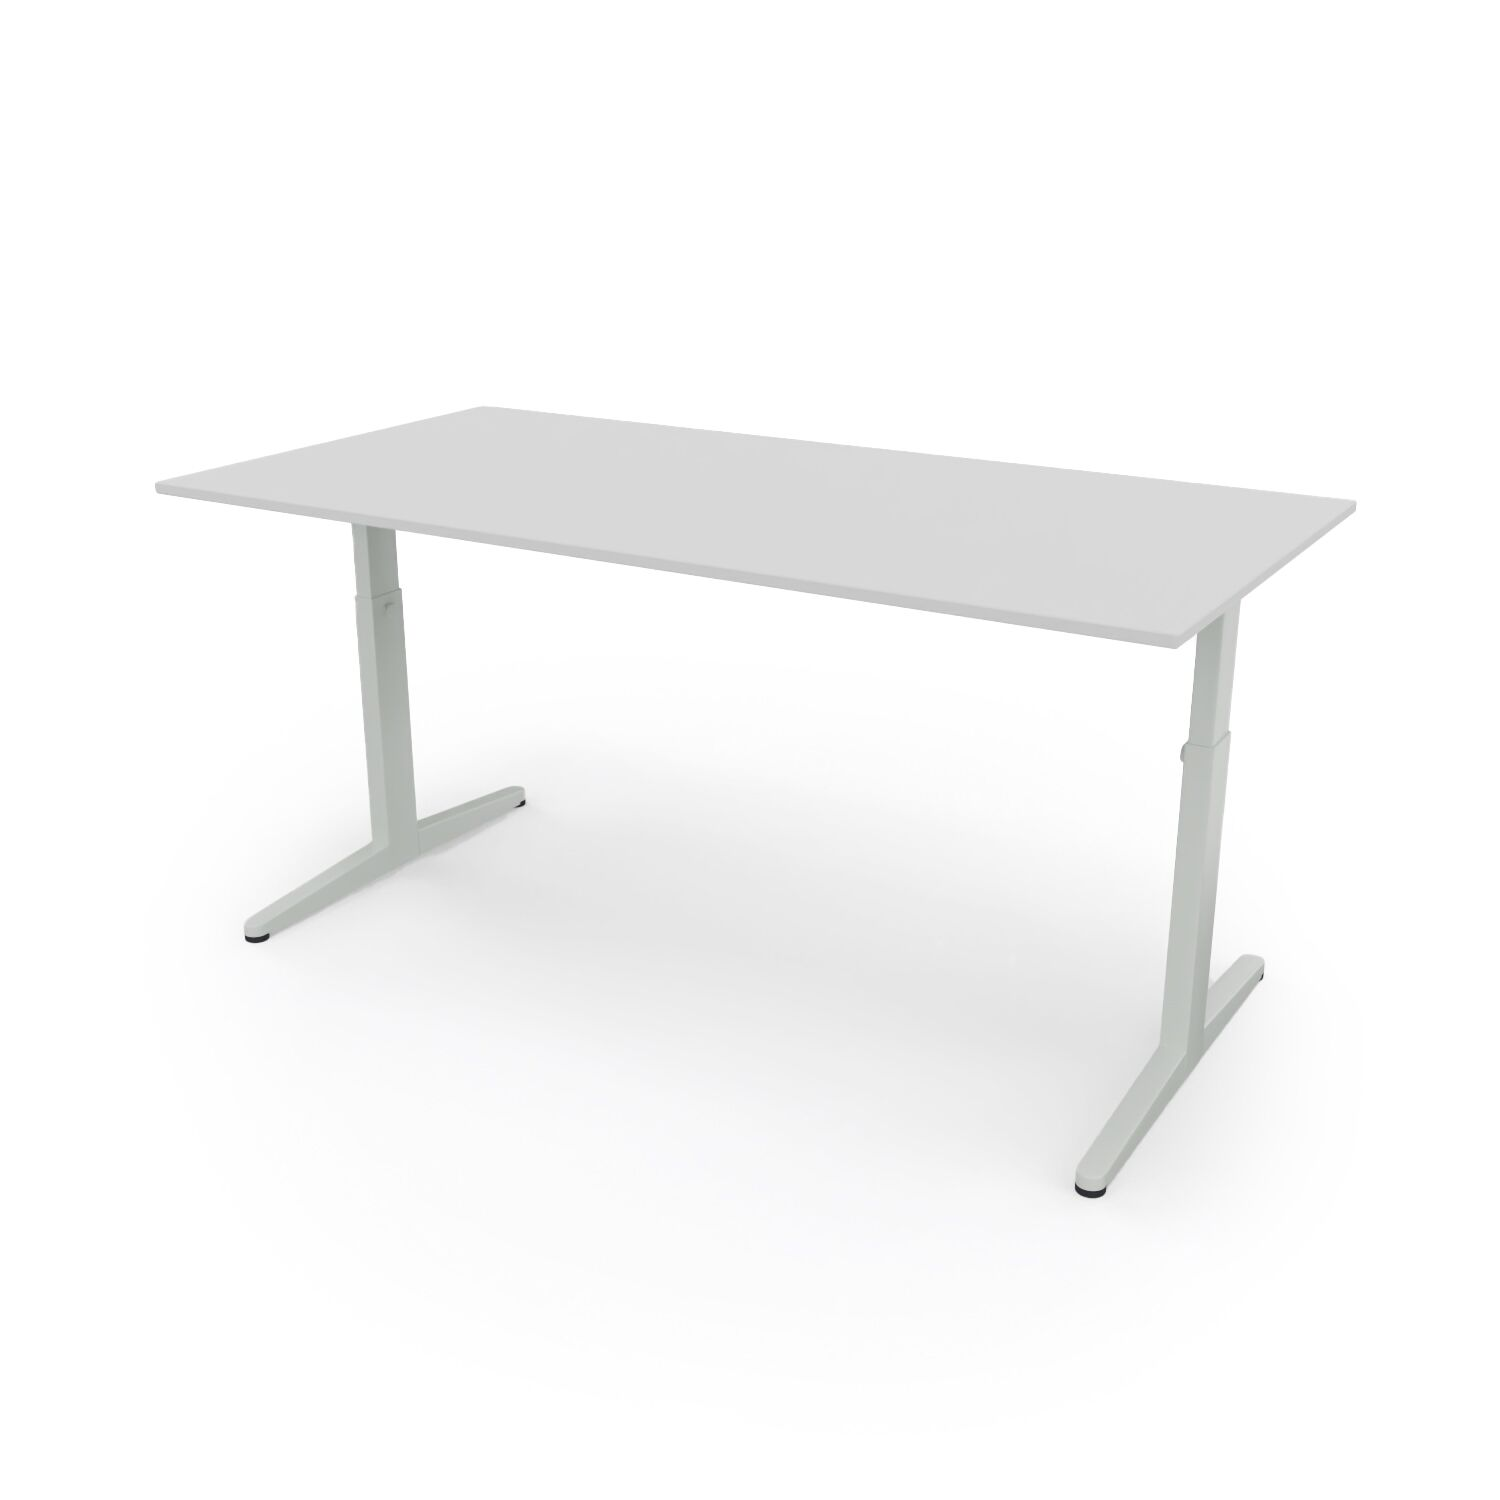 Ahrend Balance HI desk 160 frame in light grey and tabletop in light grey front left view